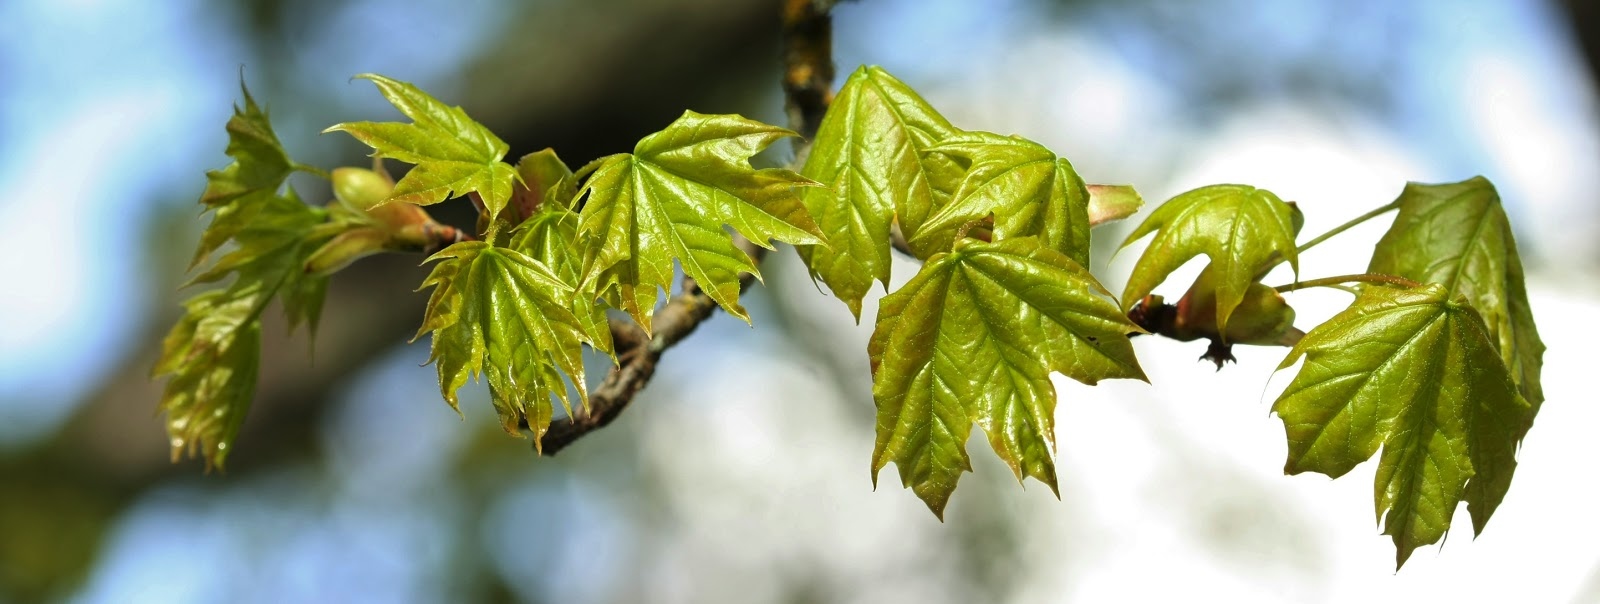 A branch of Bigleaf Maple leaves just emerging in spring